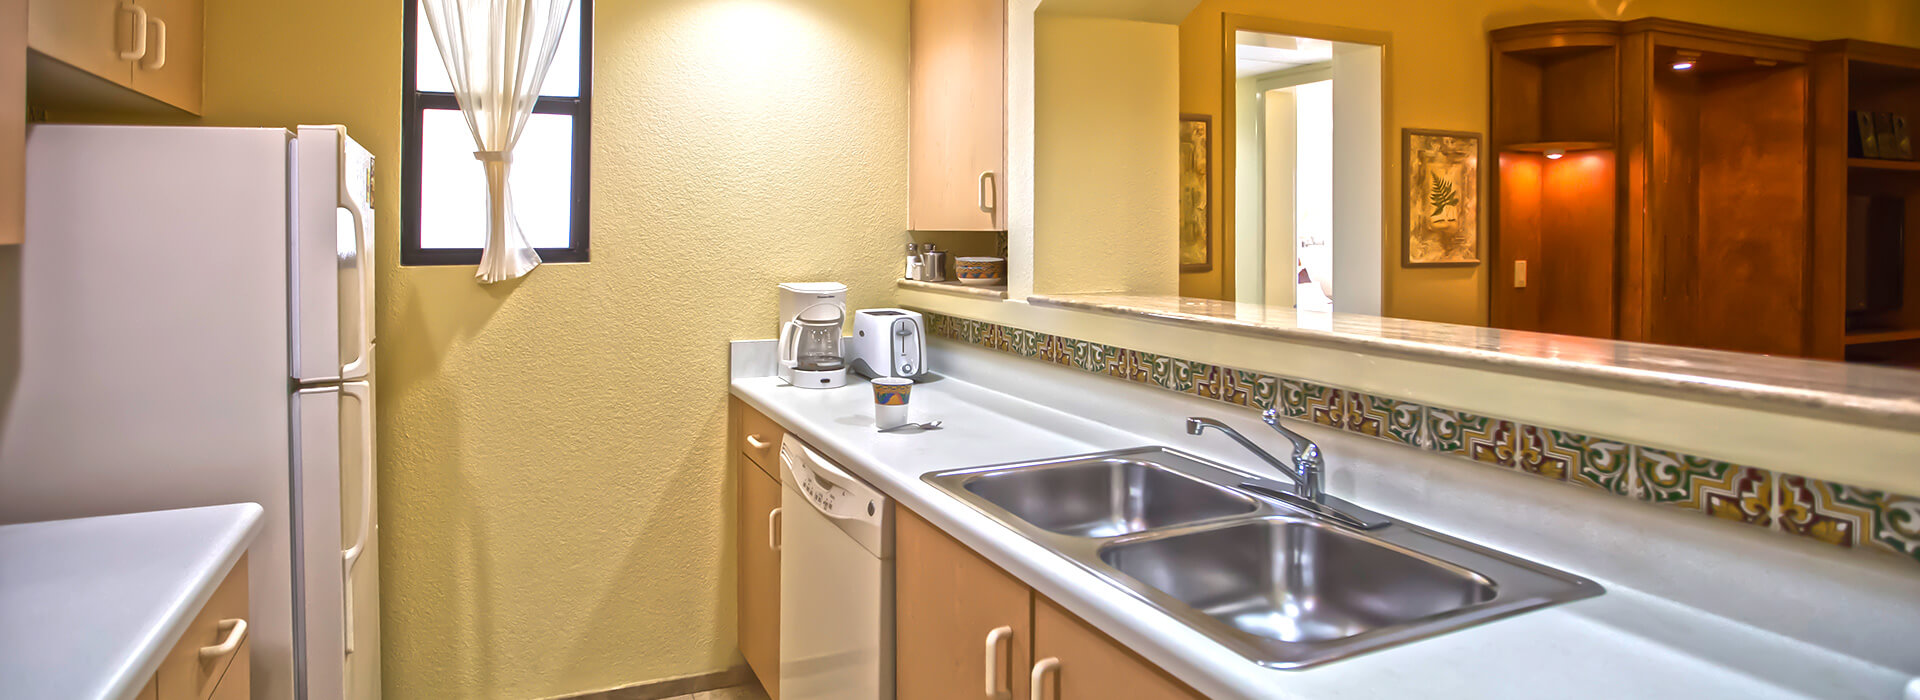 Beachfront villas with one bedroom suite and full kitchen during your Cancun All Inclusive vacations